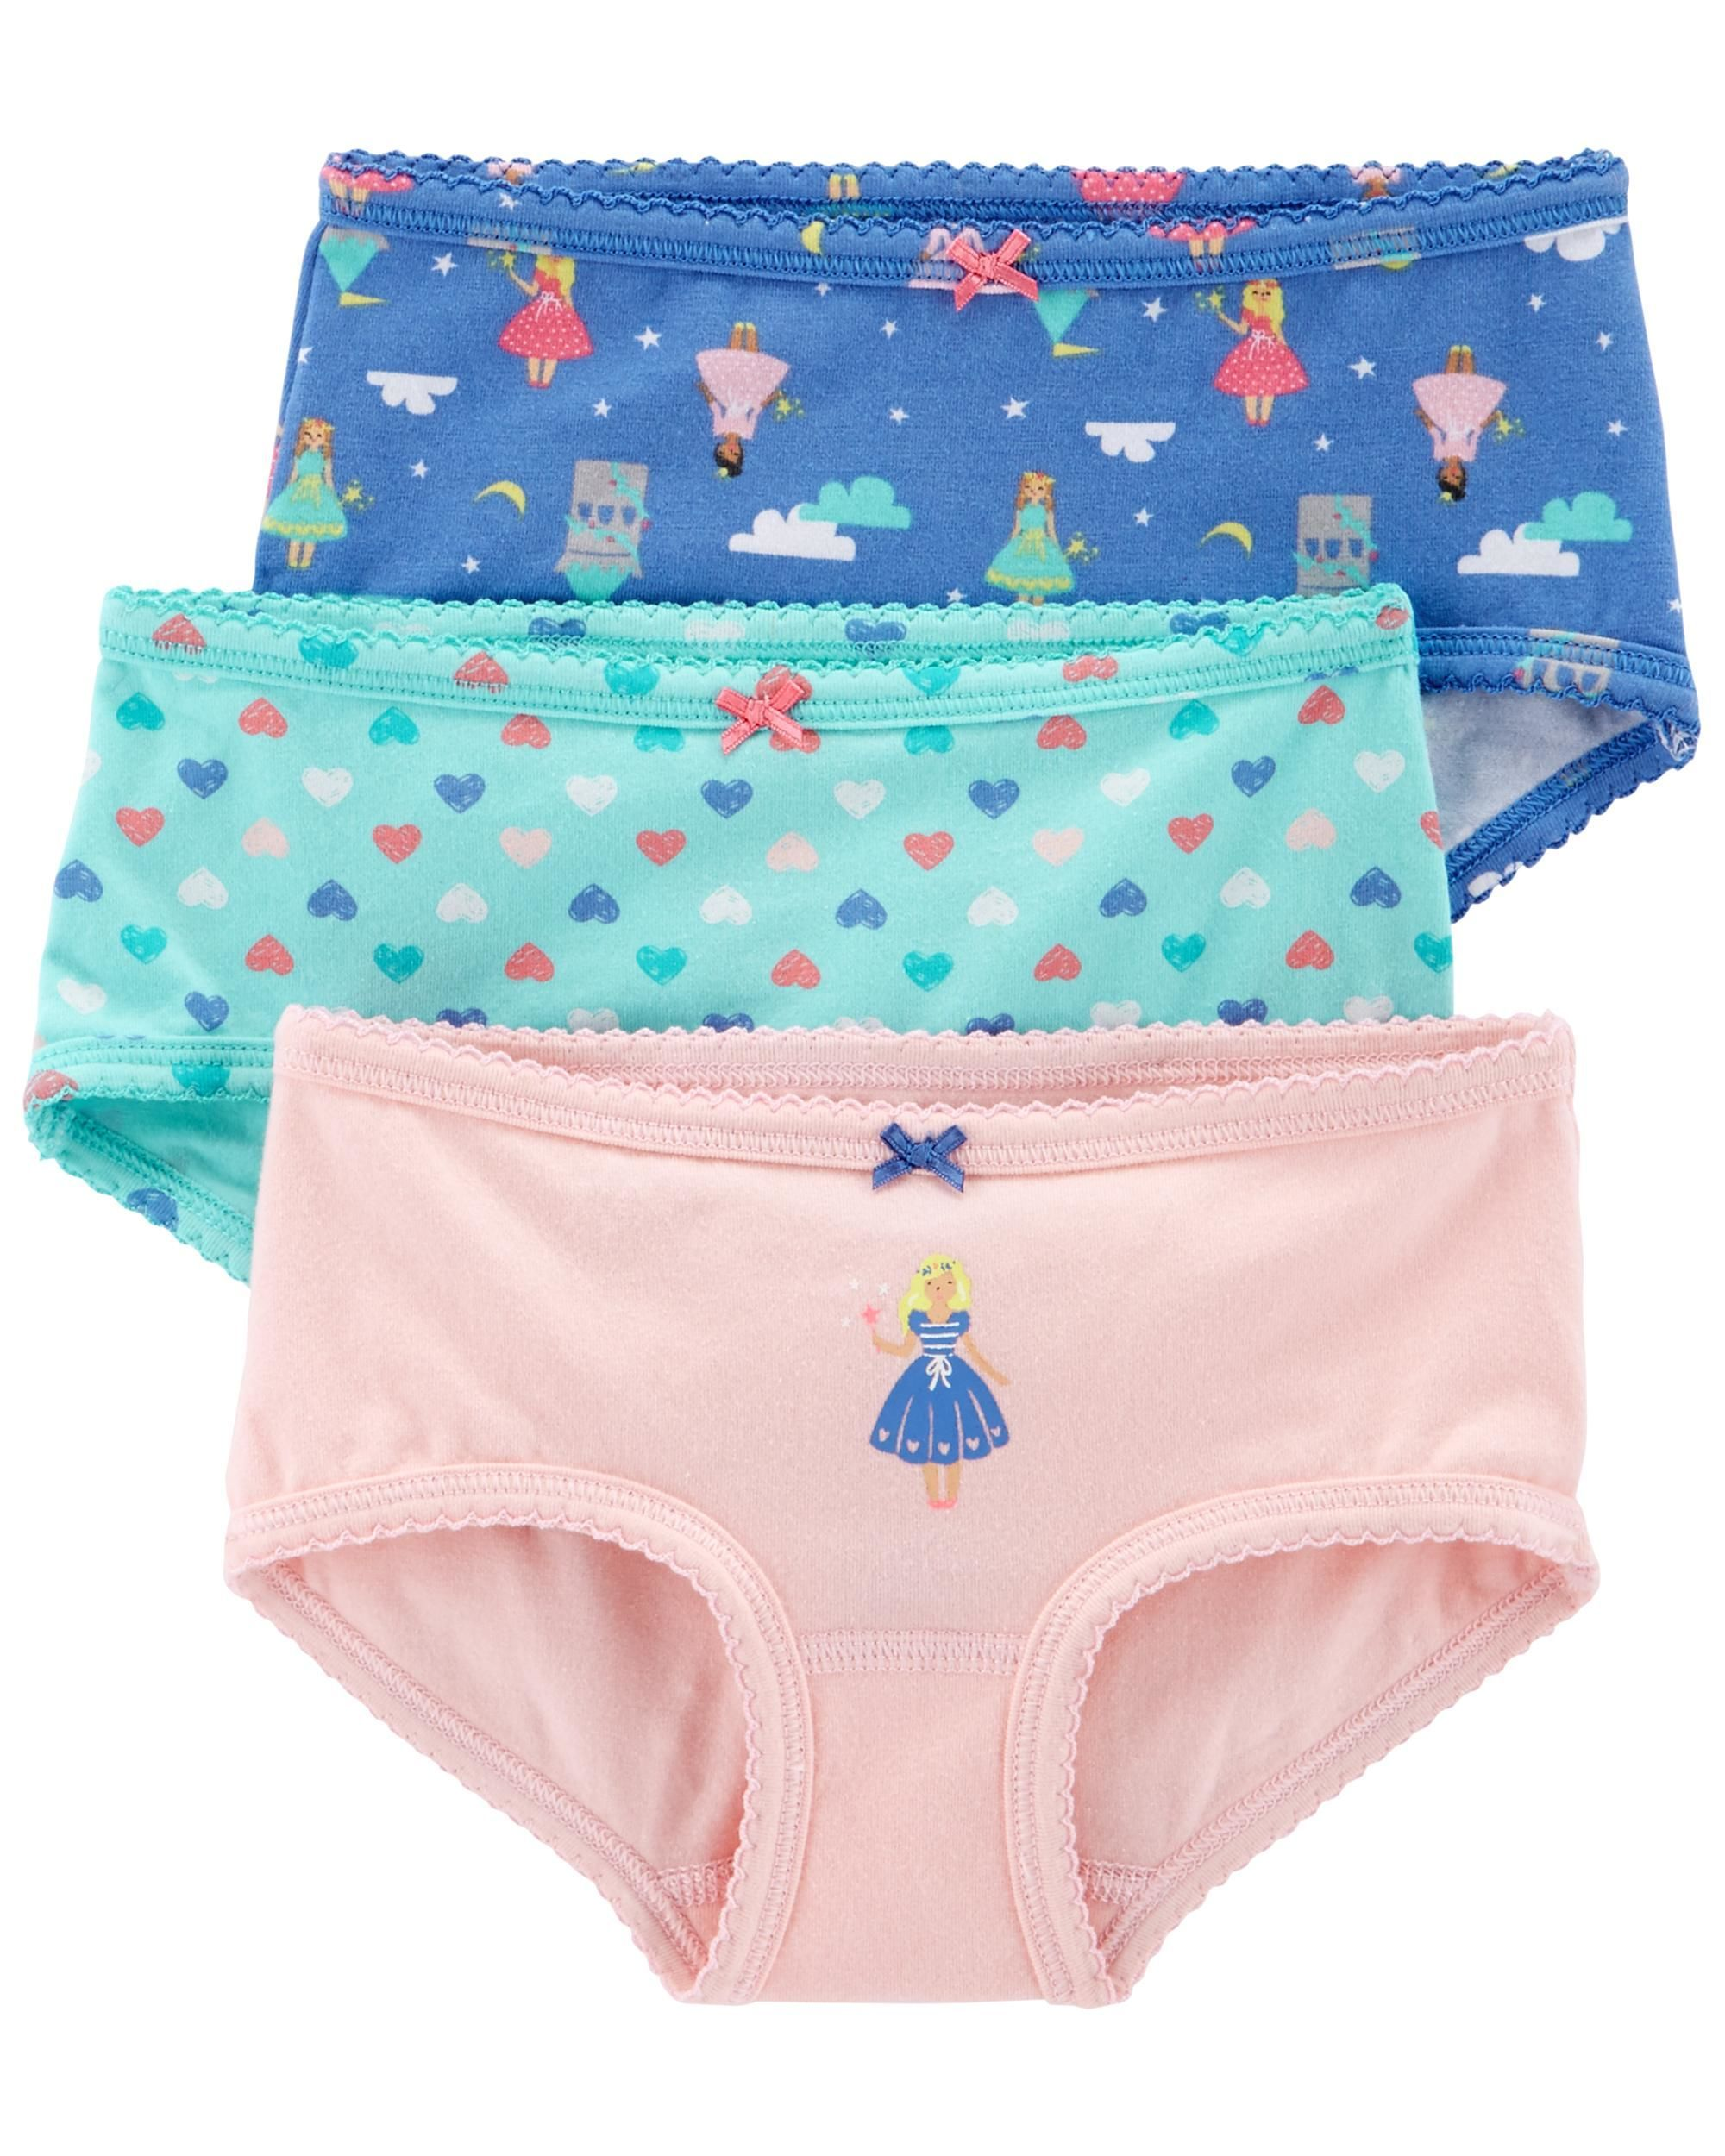 52df9197aaa8 3-Pack Stretch Cotton Undies | SARAH | Carters baby clothes, Cotton ...